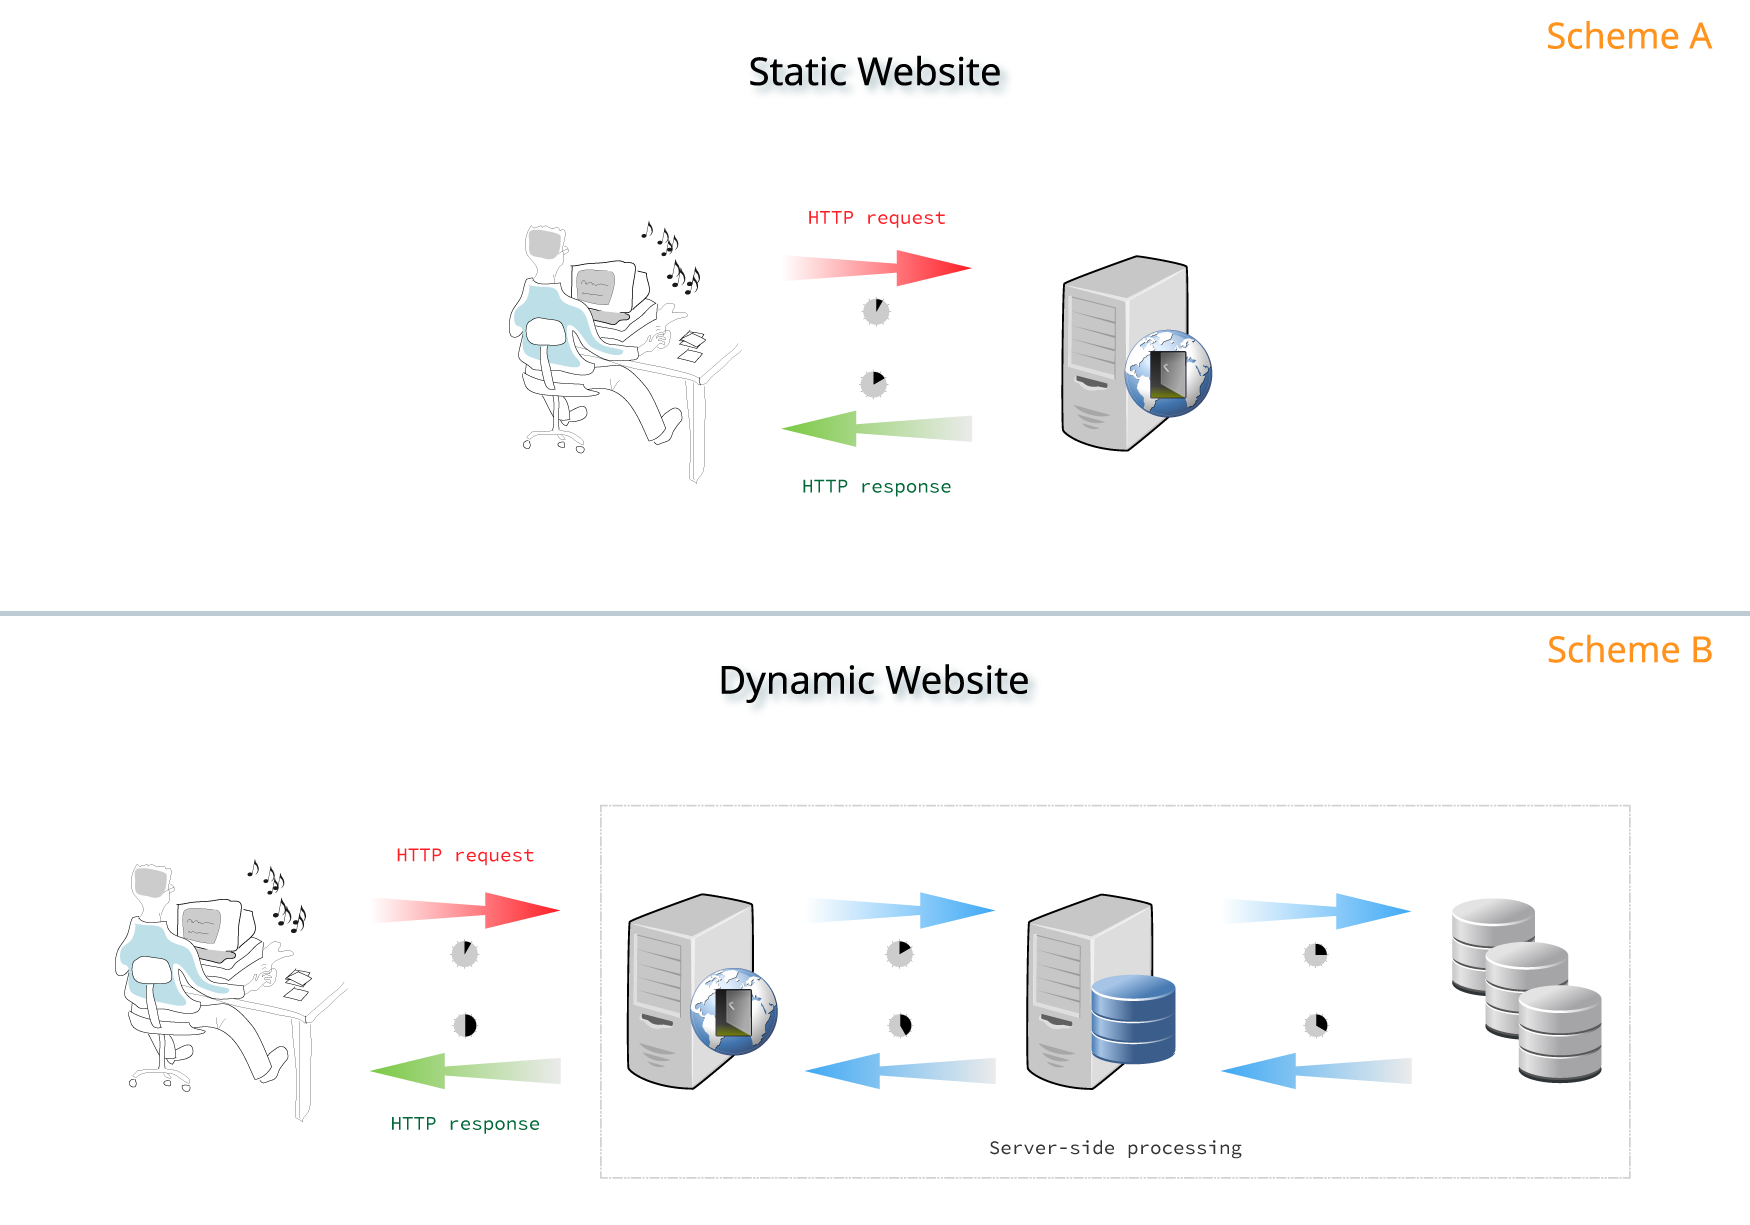 Difference between Static and Dynamic Websites